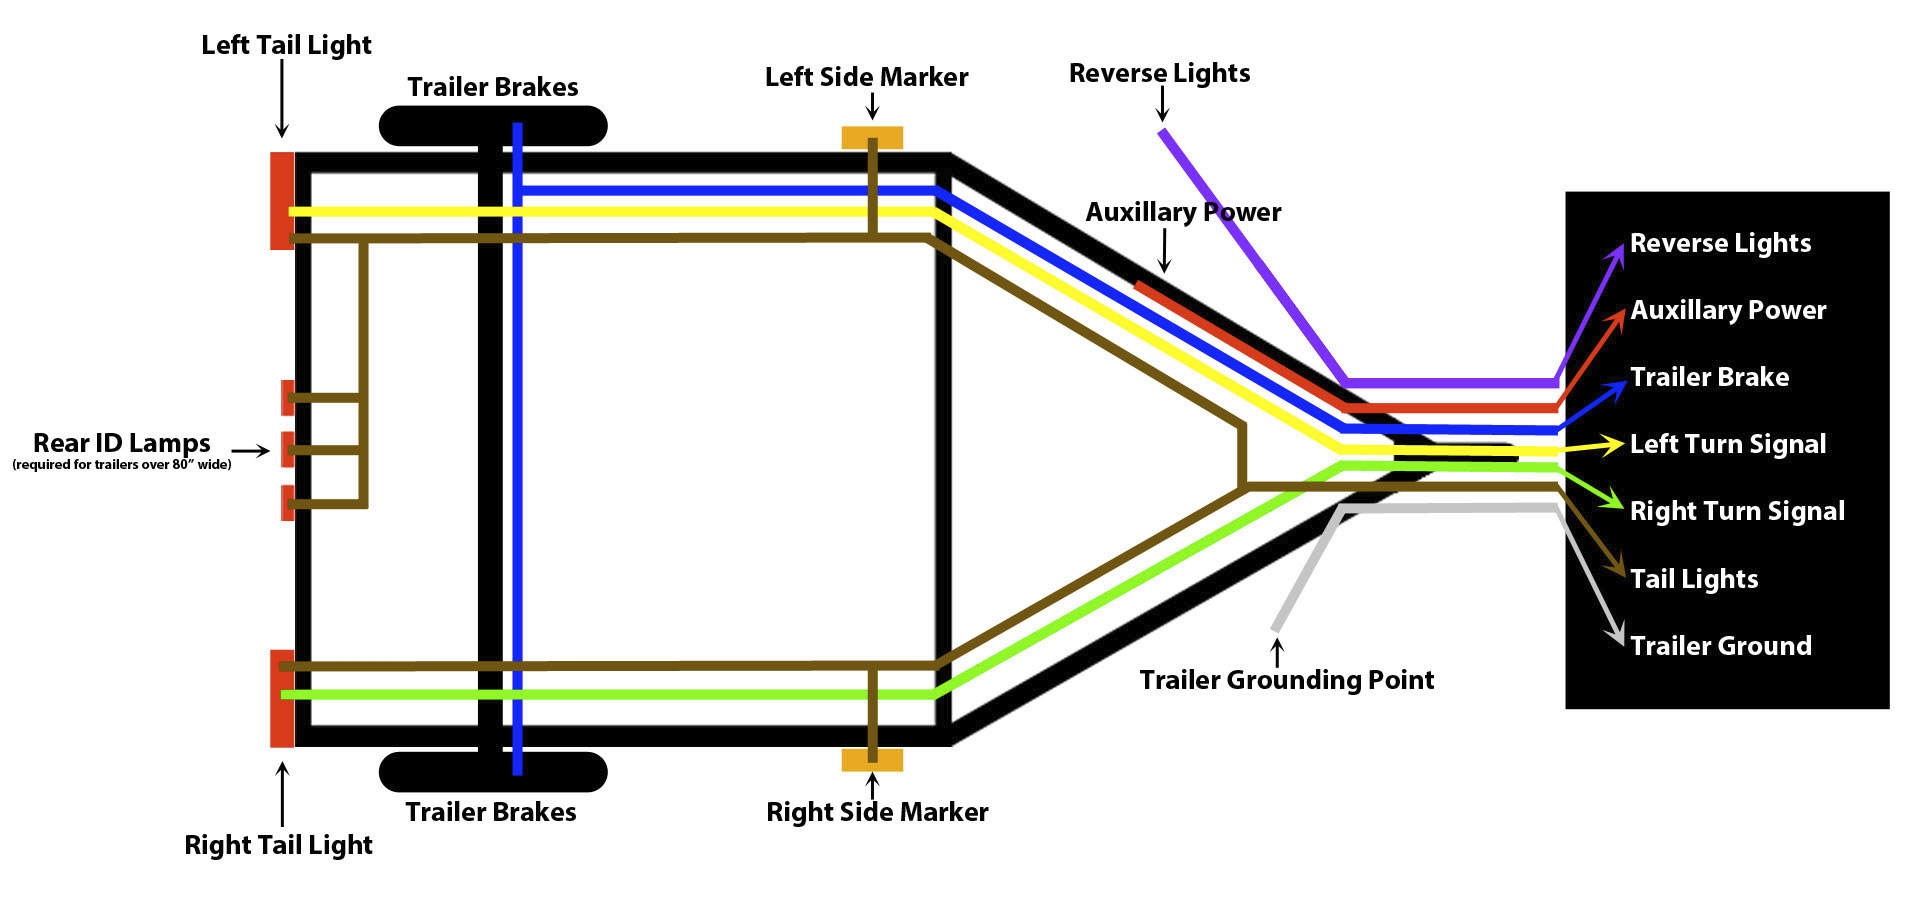 How To Wire Trailer Lights - Trailer Wiring Guide & Videos - 6 Pin Trailer Wiring Diagram With Brakes